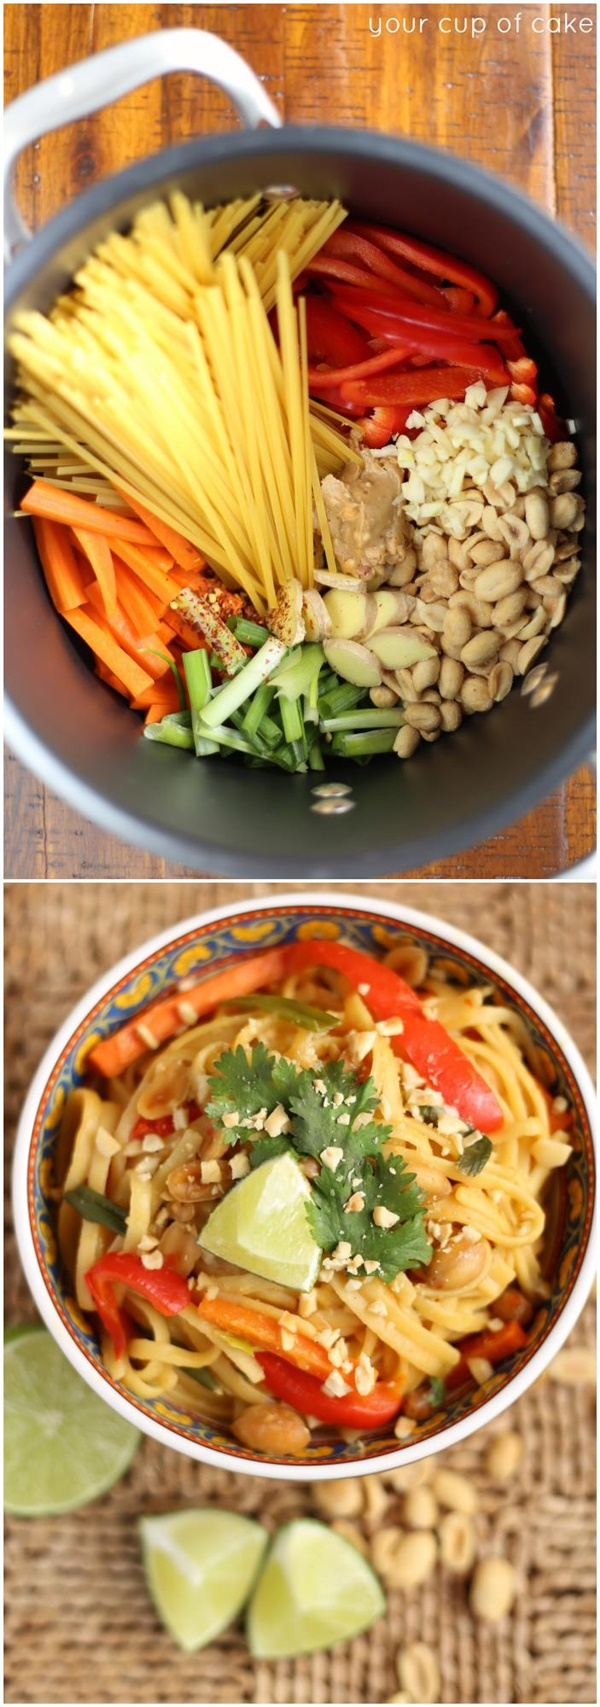 Delicious Dinners Ideas That Come Together In 30 Minutes